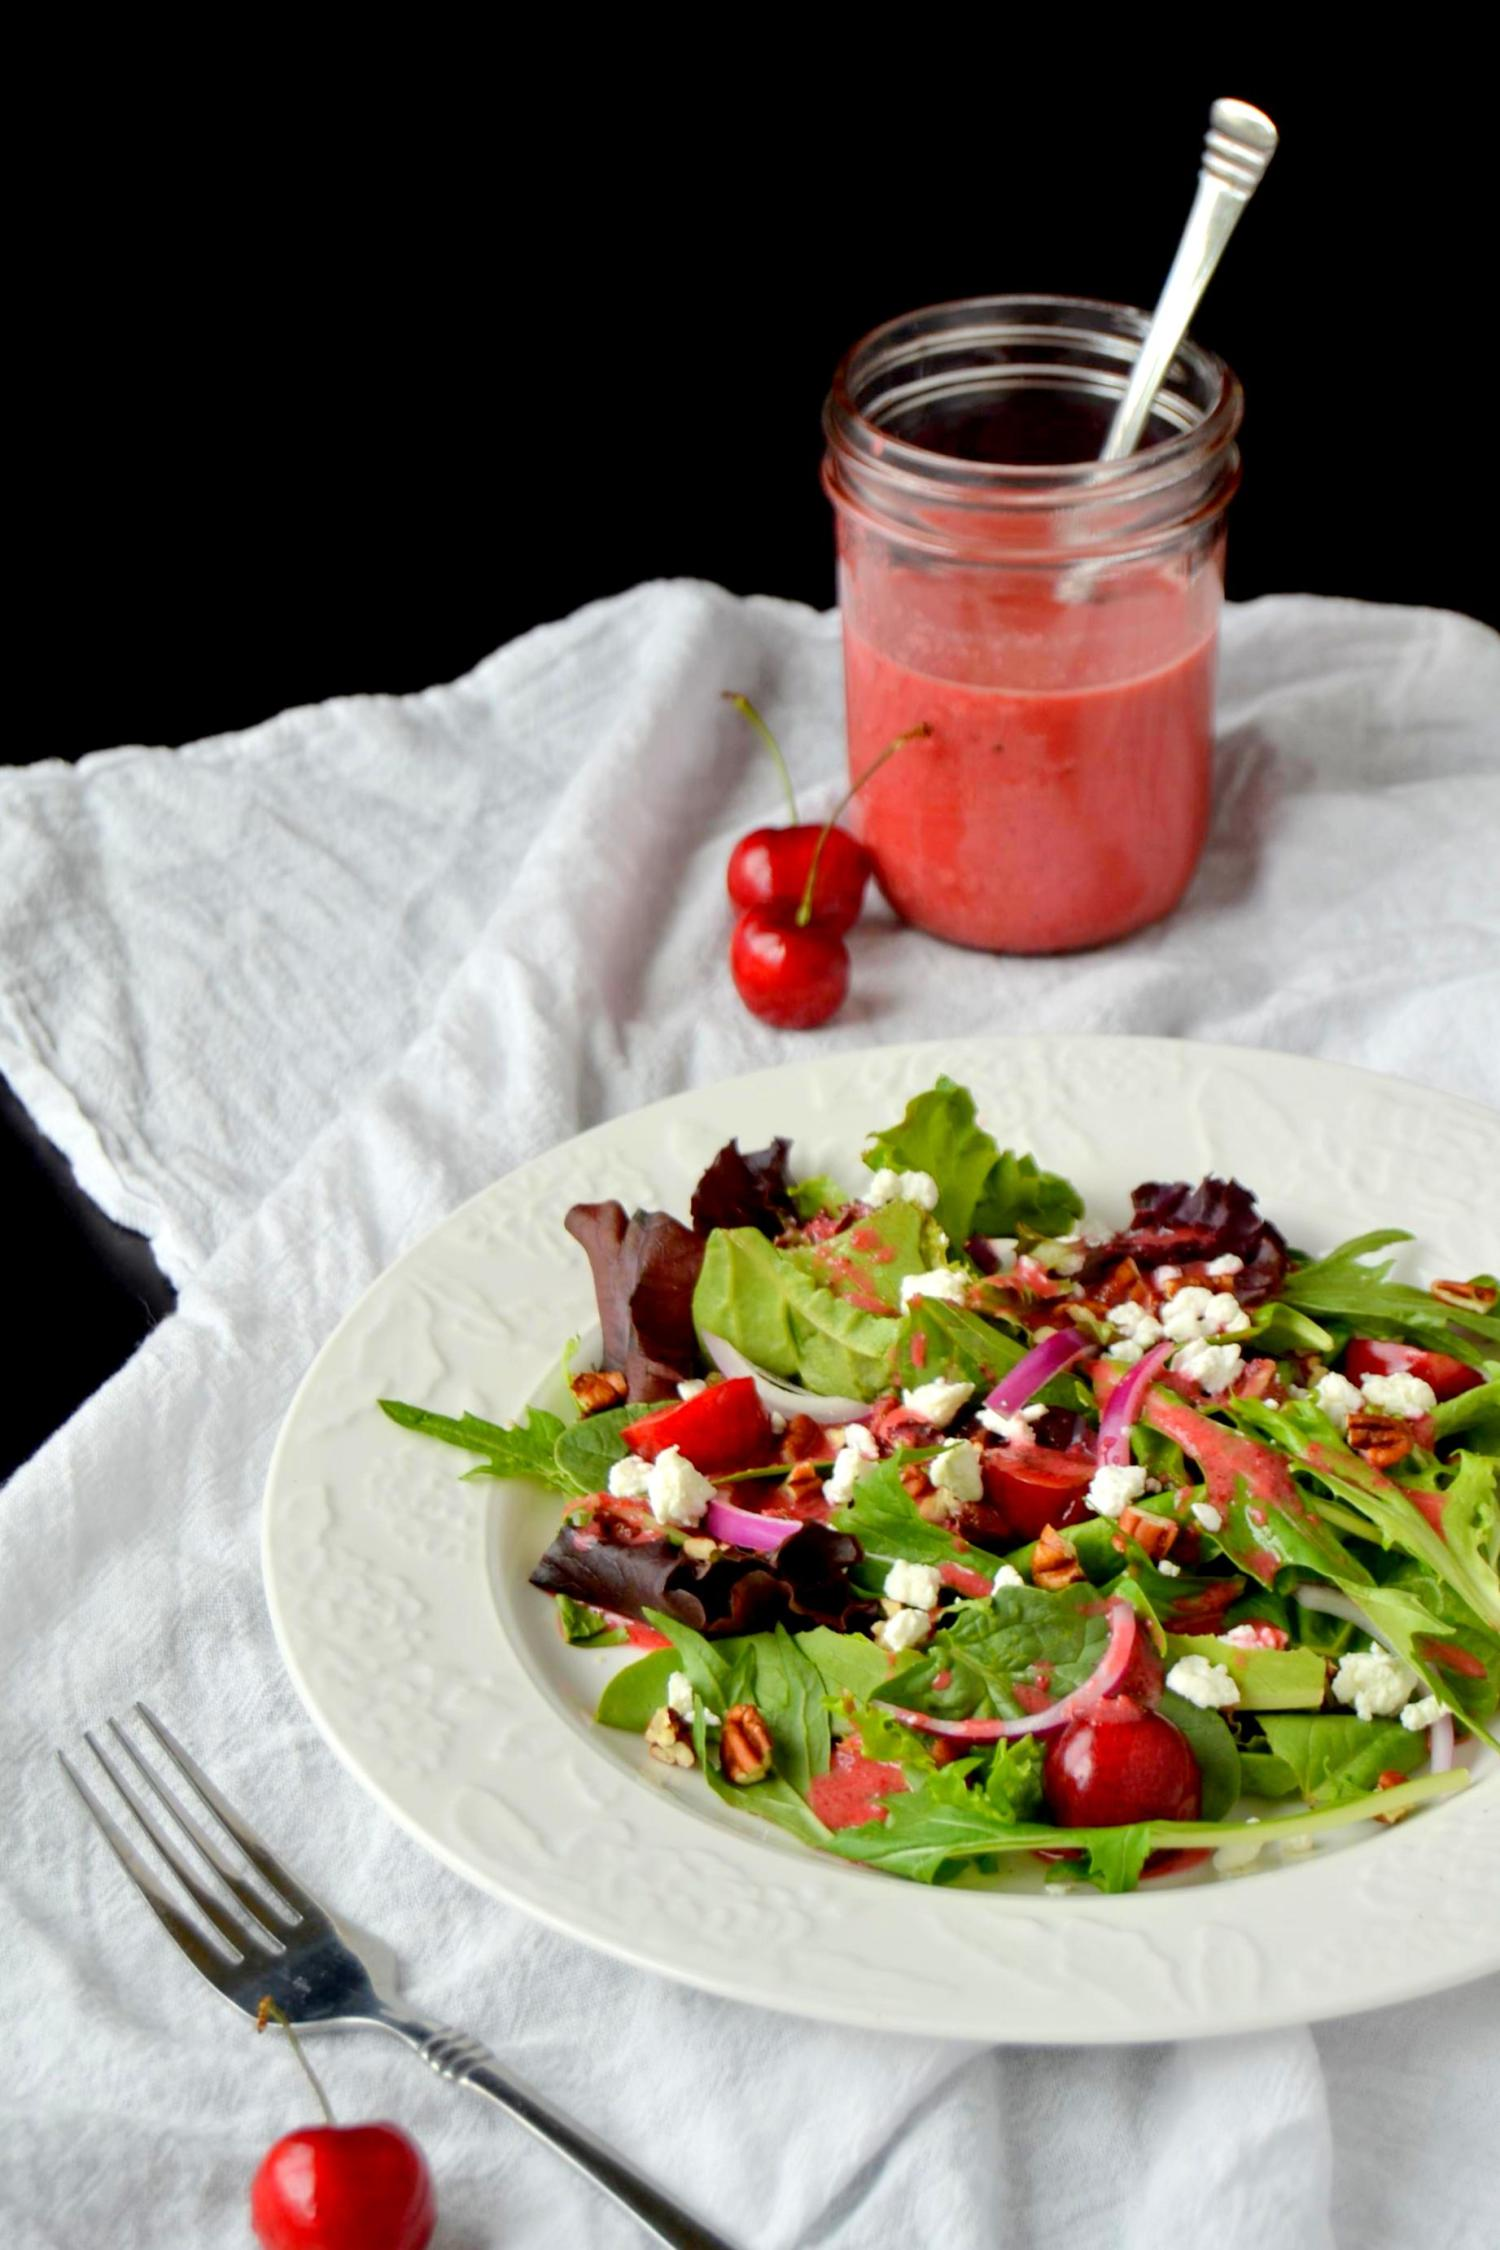 Mixed Greens Salad with Cherry Vinaigrette